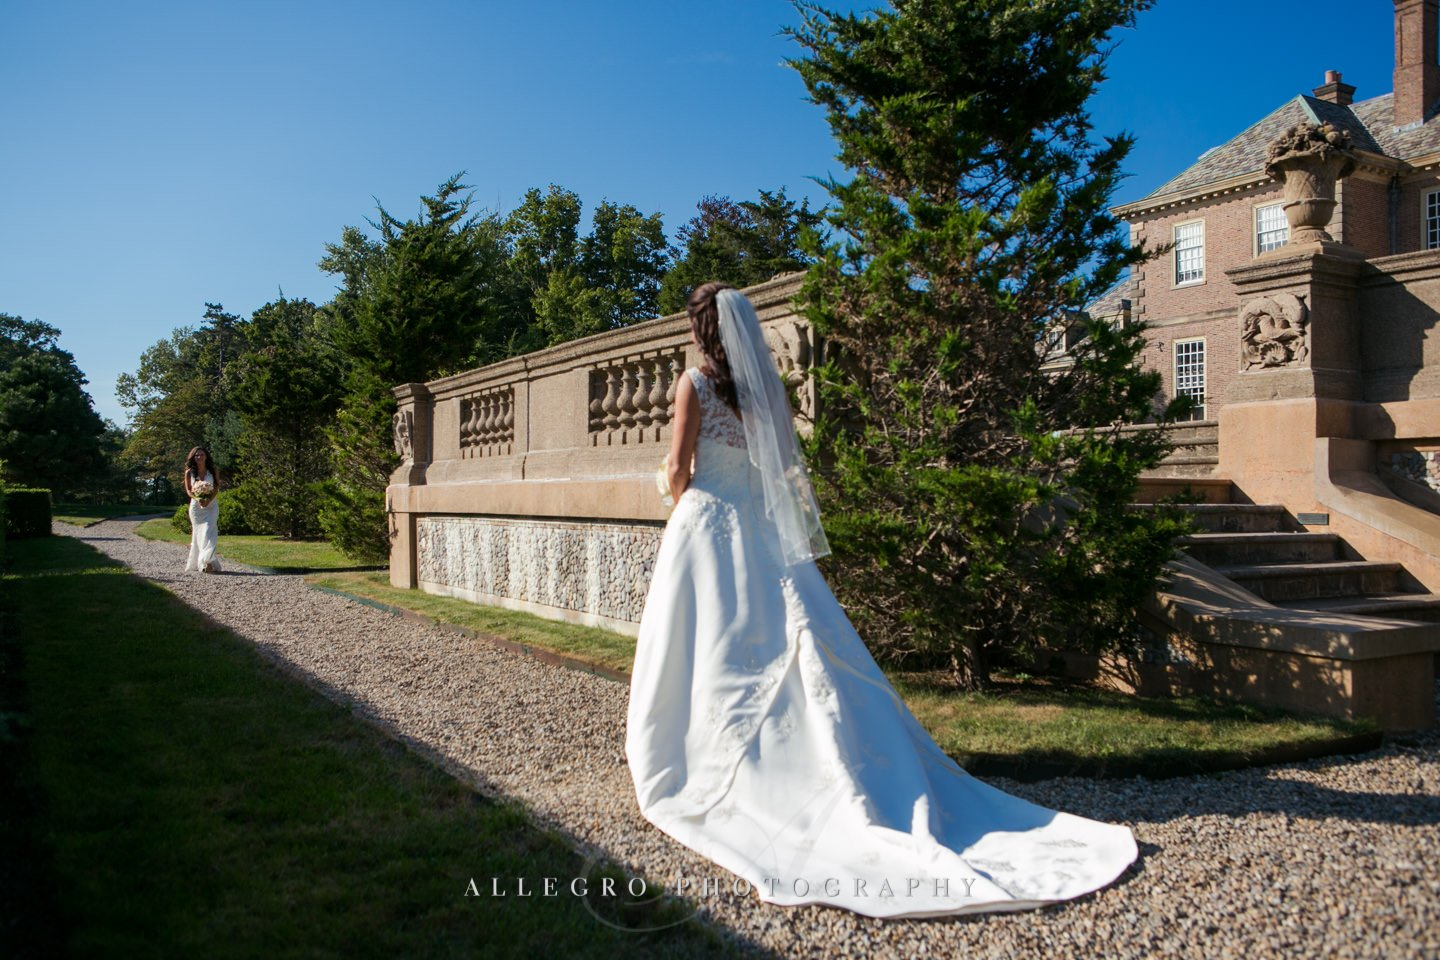 brides first look - photo by Allegro Photography